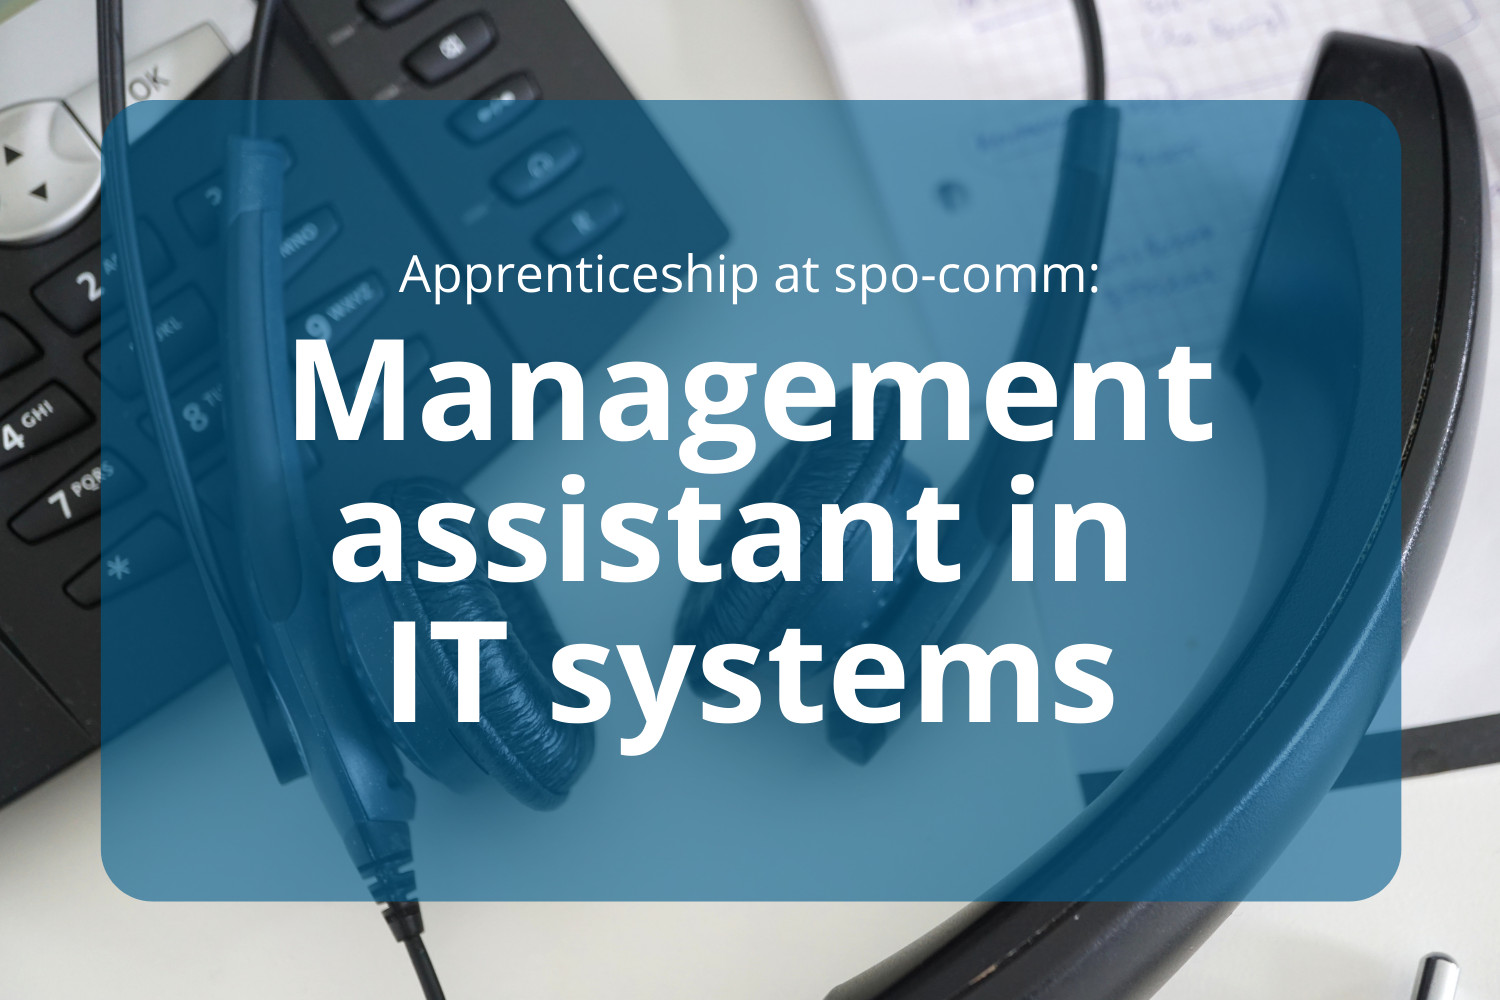 Apprenticeship as a management assistant in IT-systems at spo-comm